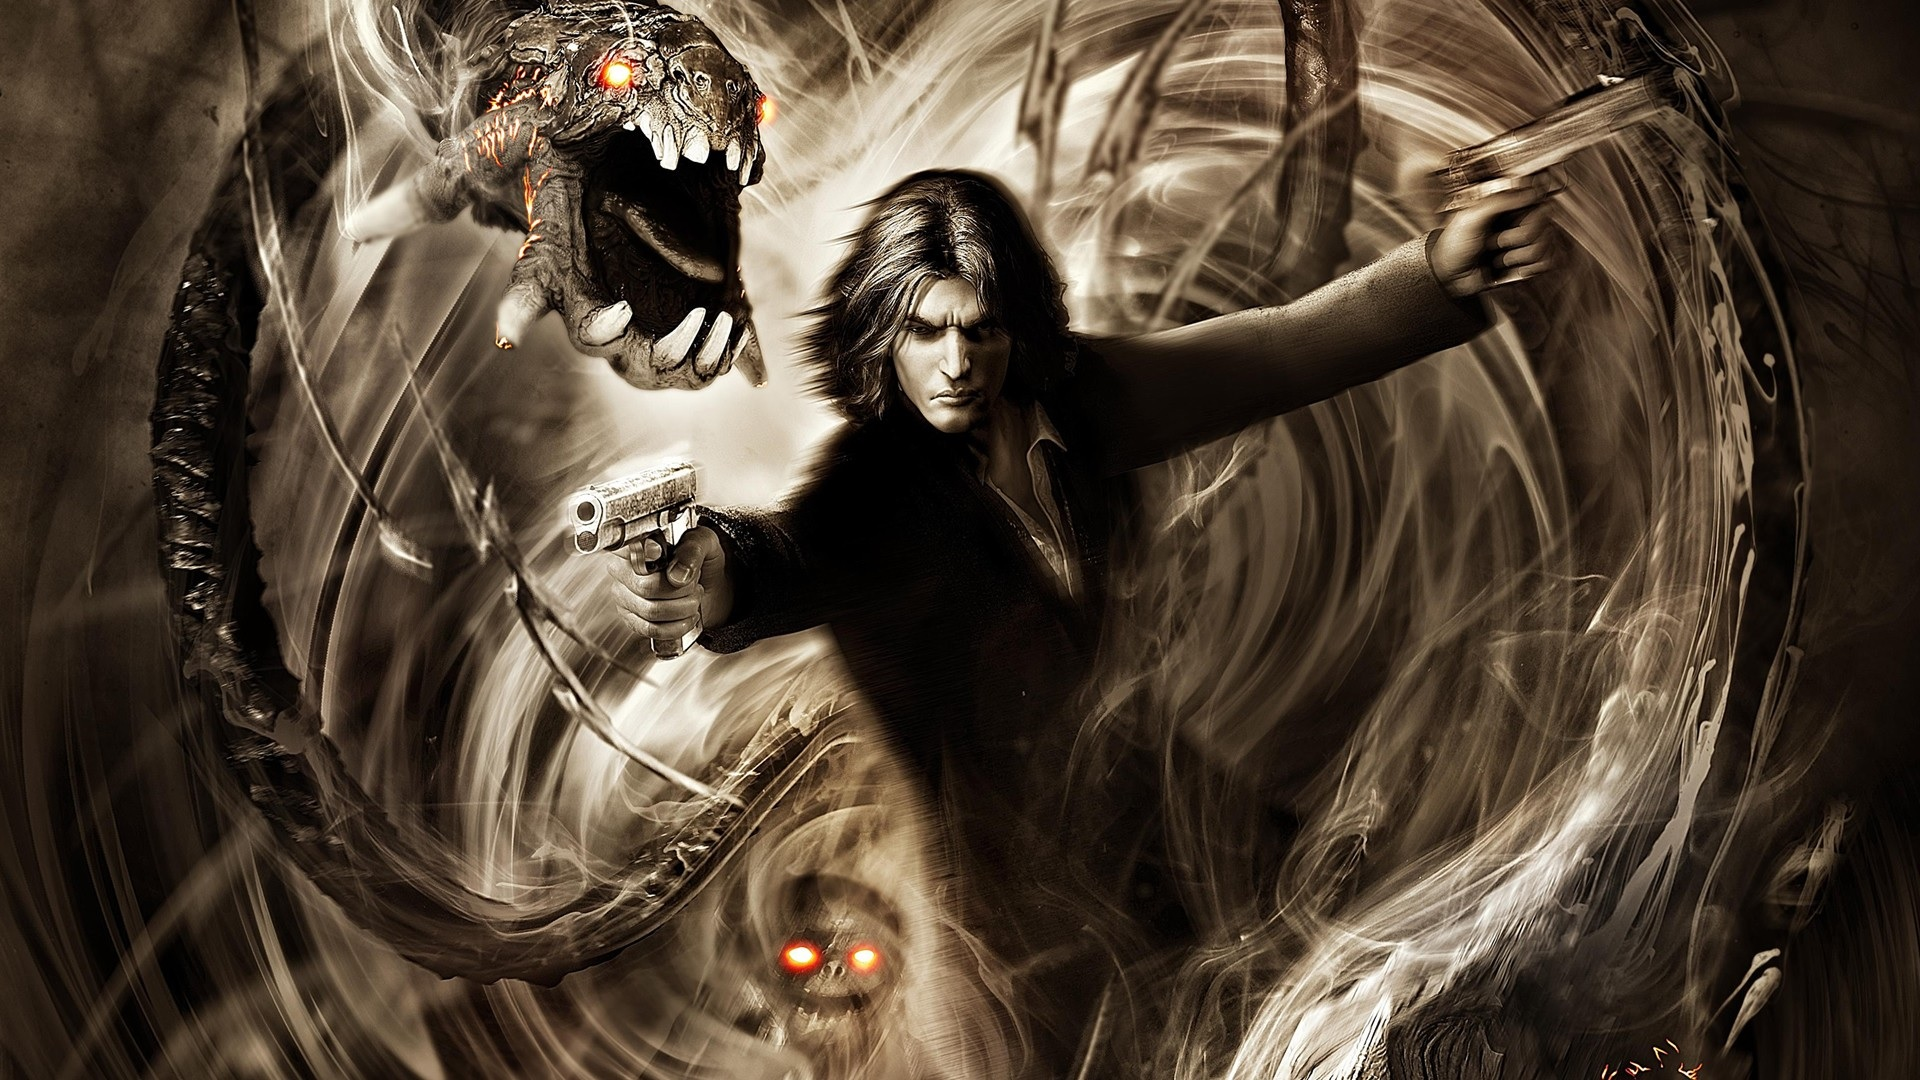 The Darkness joins Xbox One backward compatibility alongside two other shooters screenshot